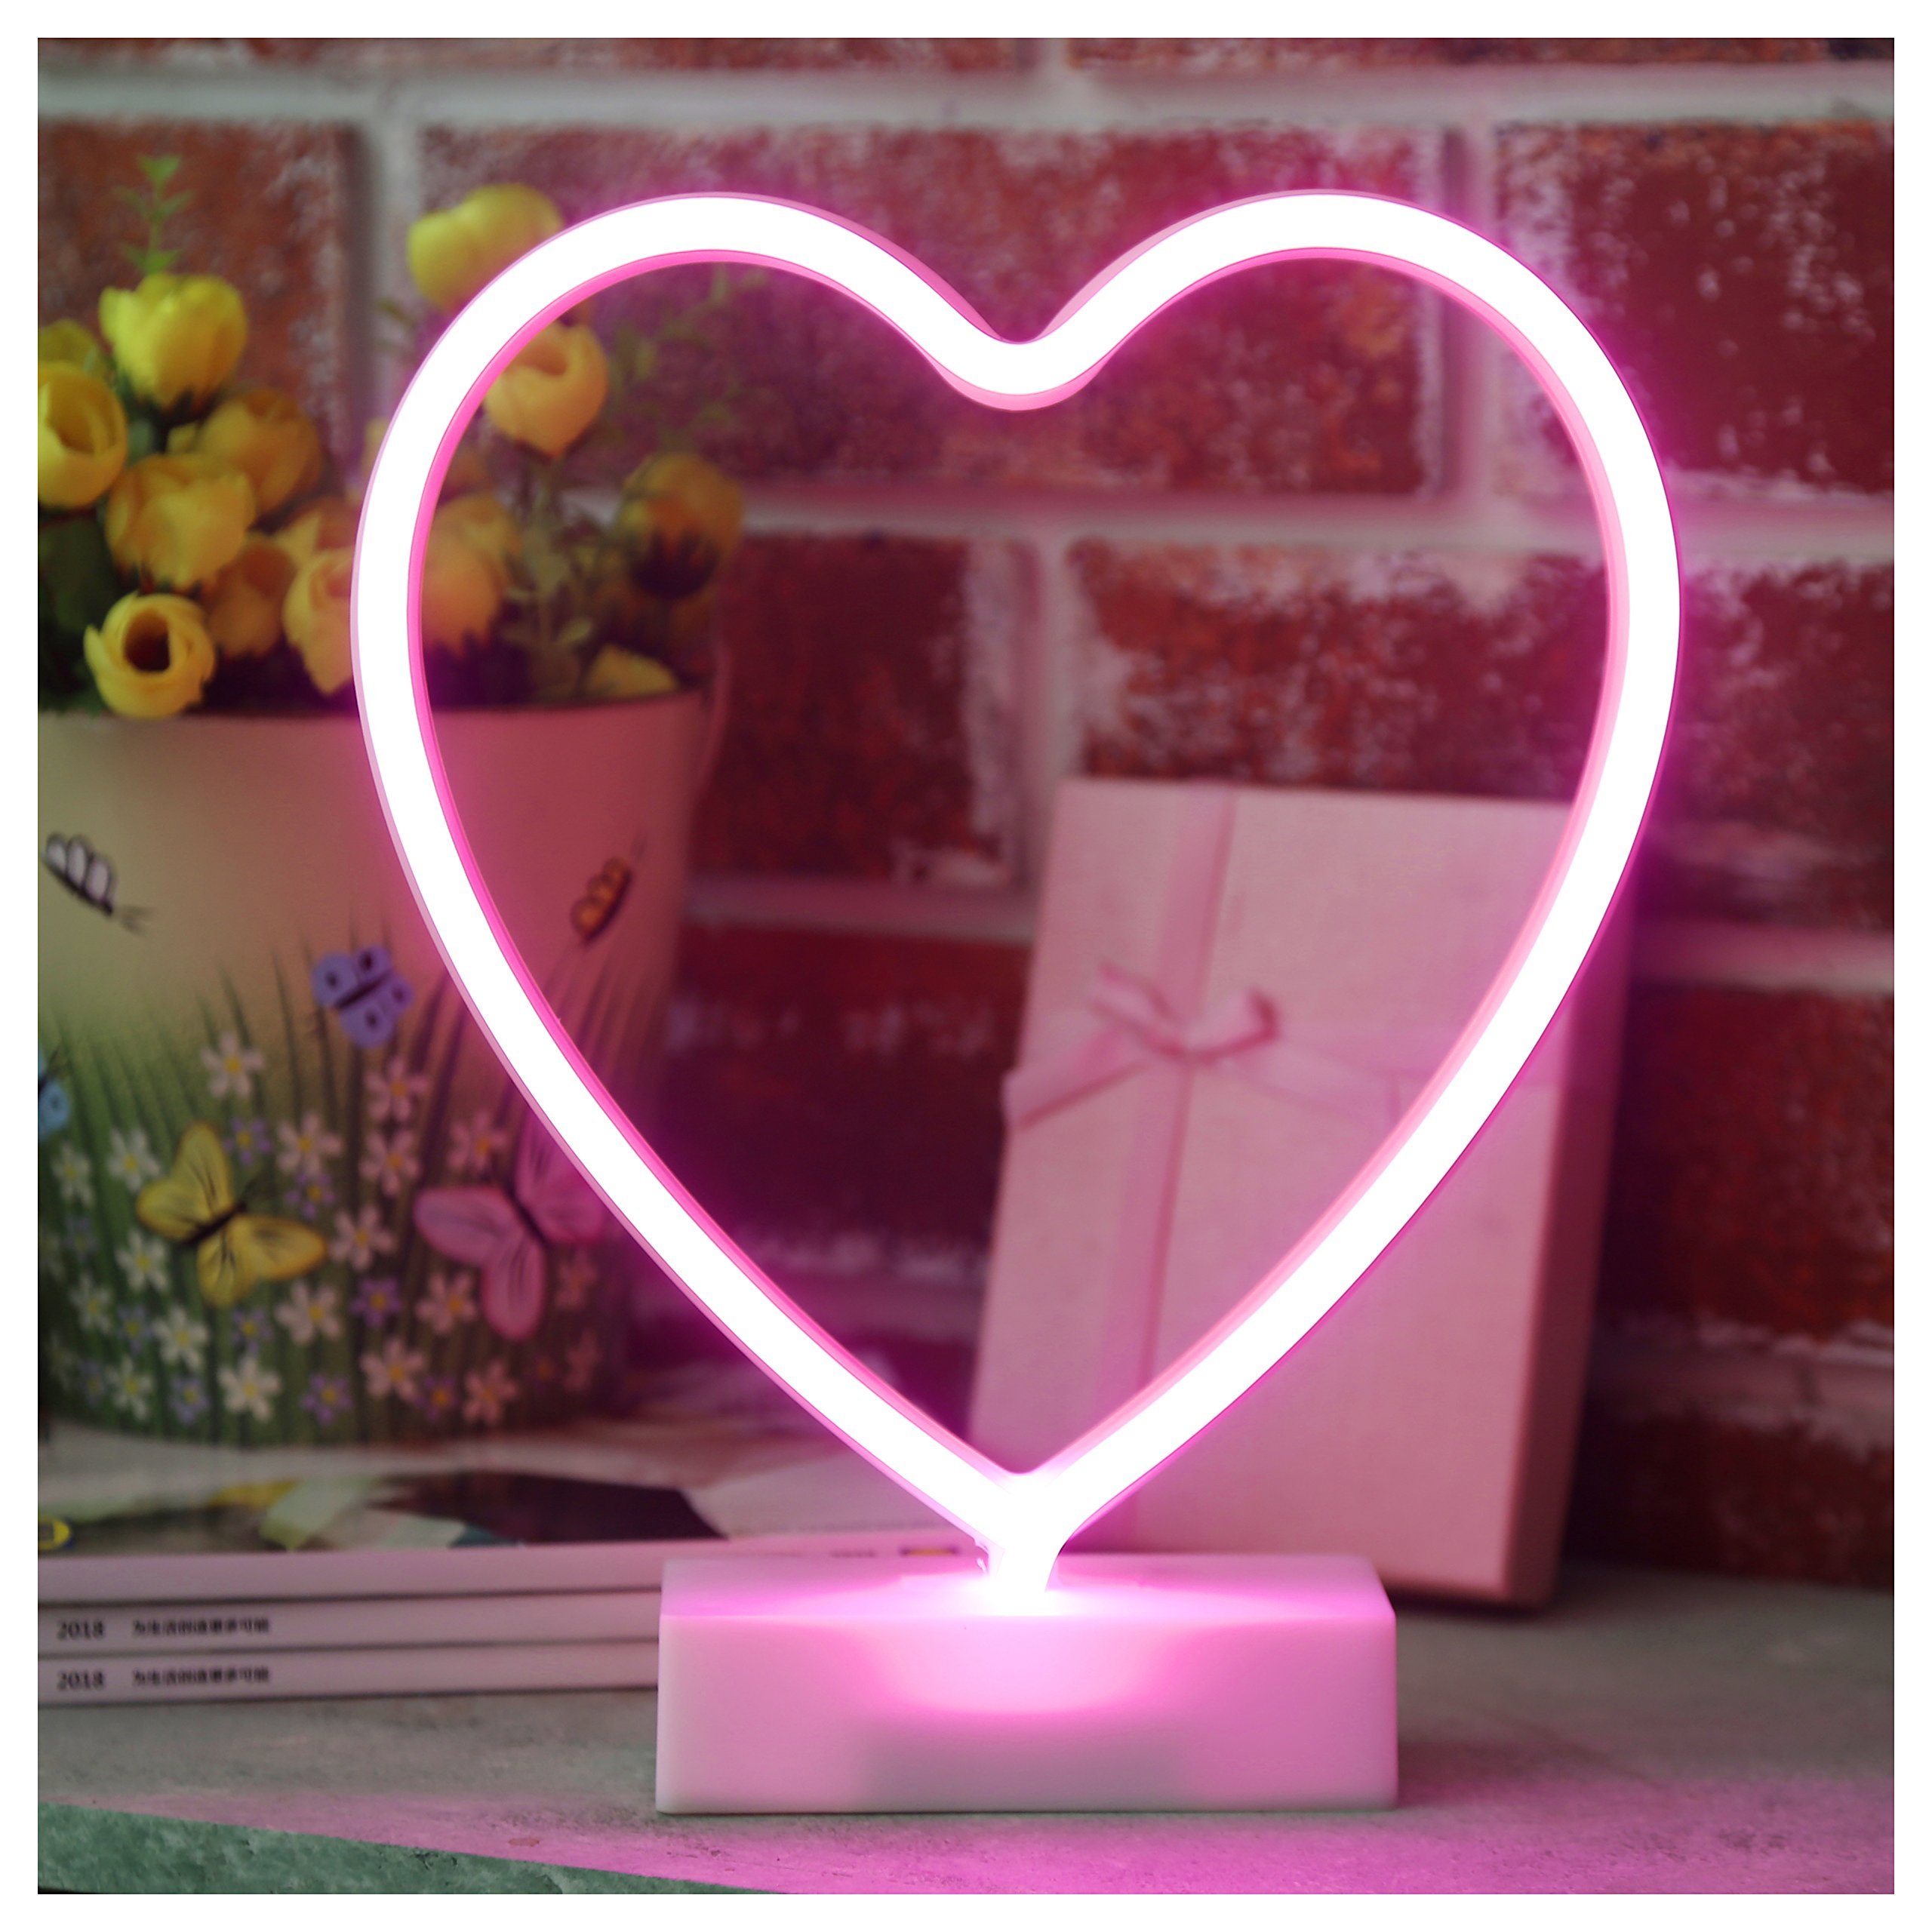 YiiY Heart Neon Sign Light,Table Decor Lamp,Battery Powered Decor for Desk,Living Room (Heart-Pink) by YiiY